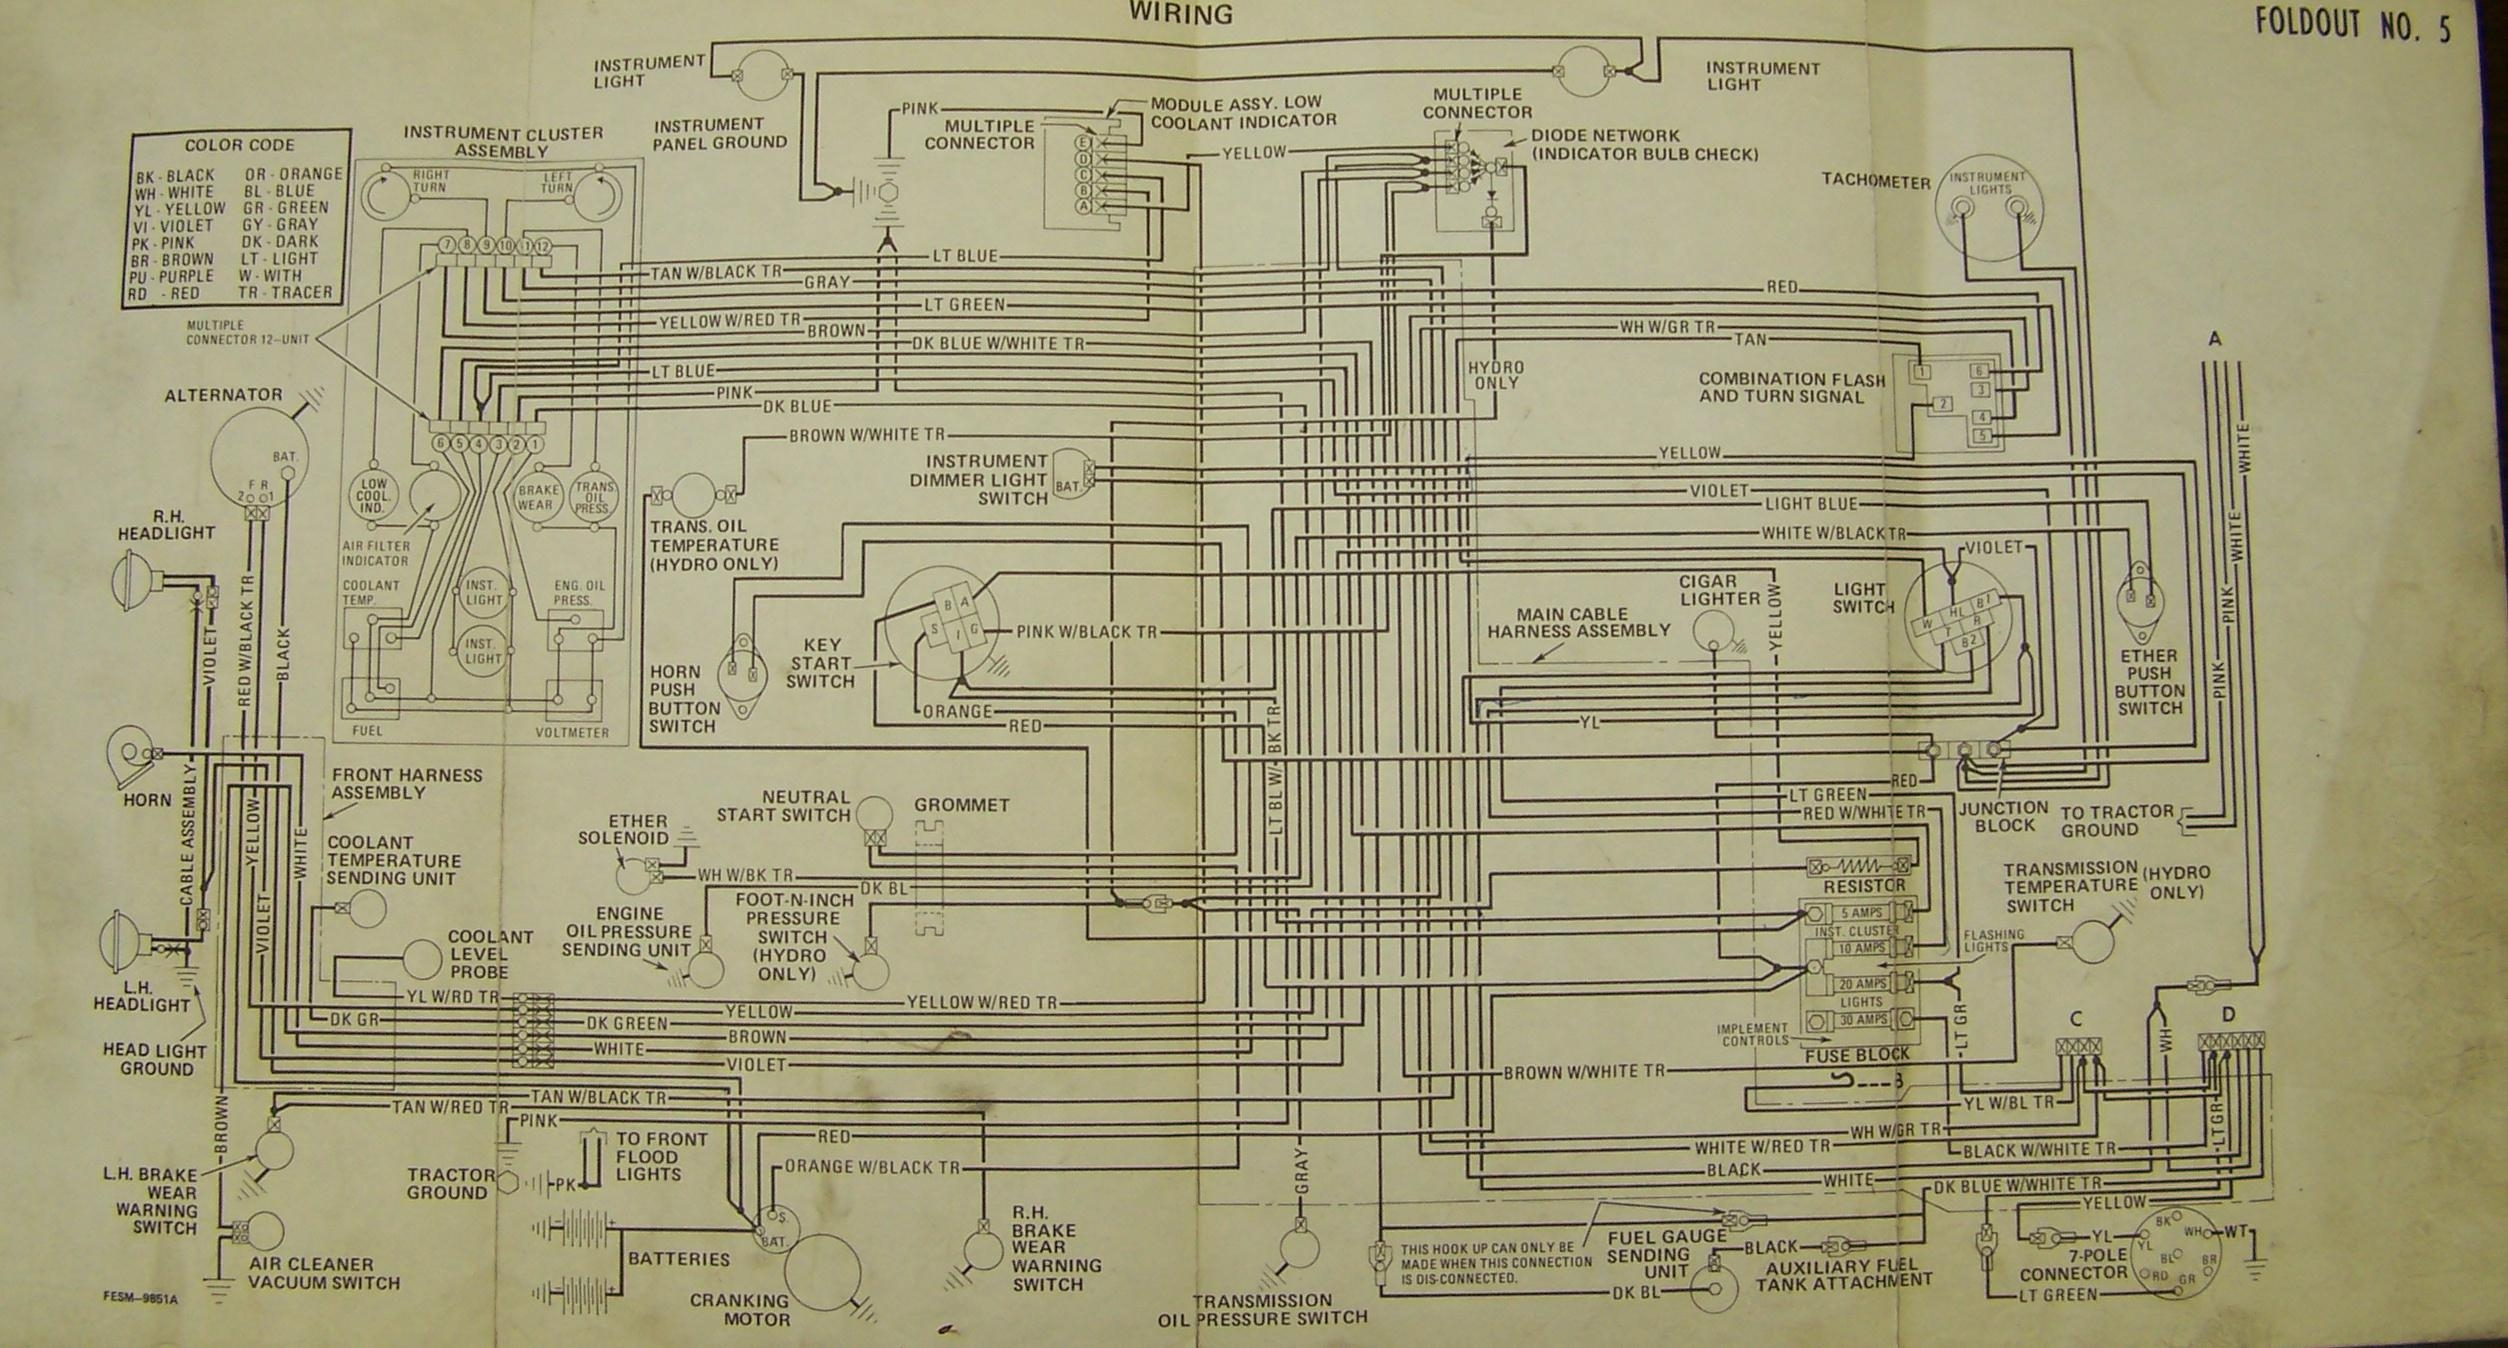 Wiring Schematics Free Free Wiring Diagram On Wiring Diagram